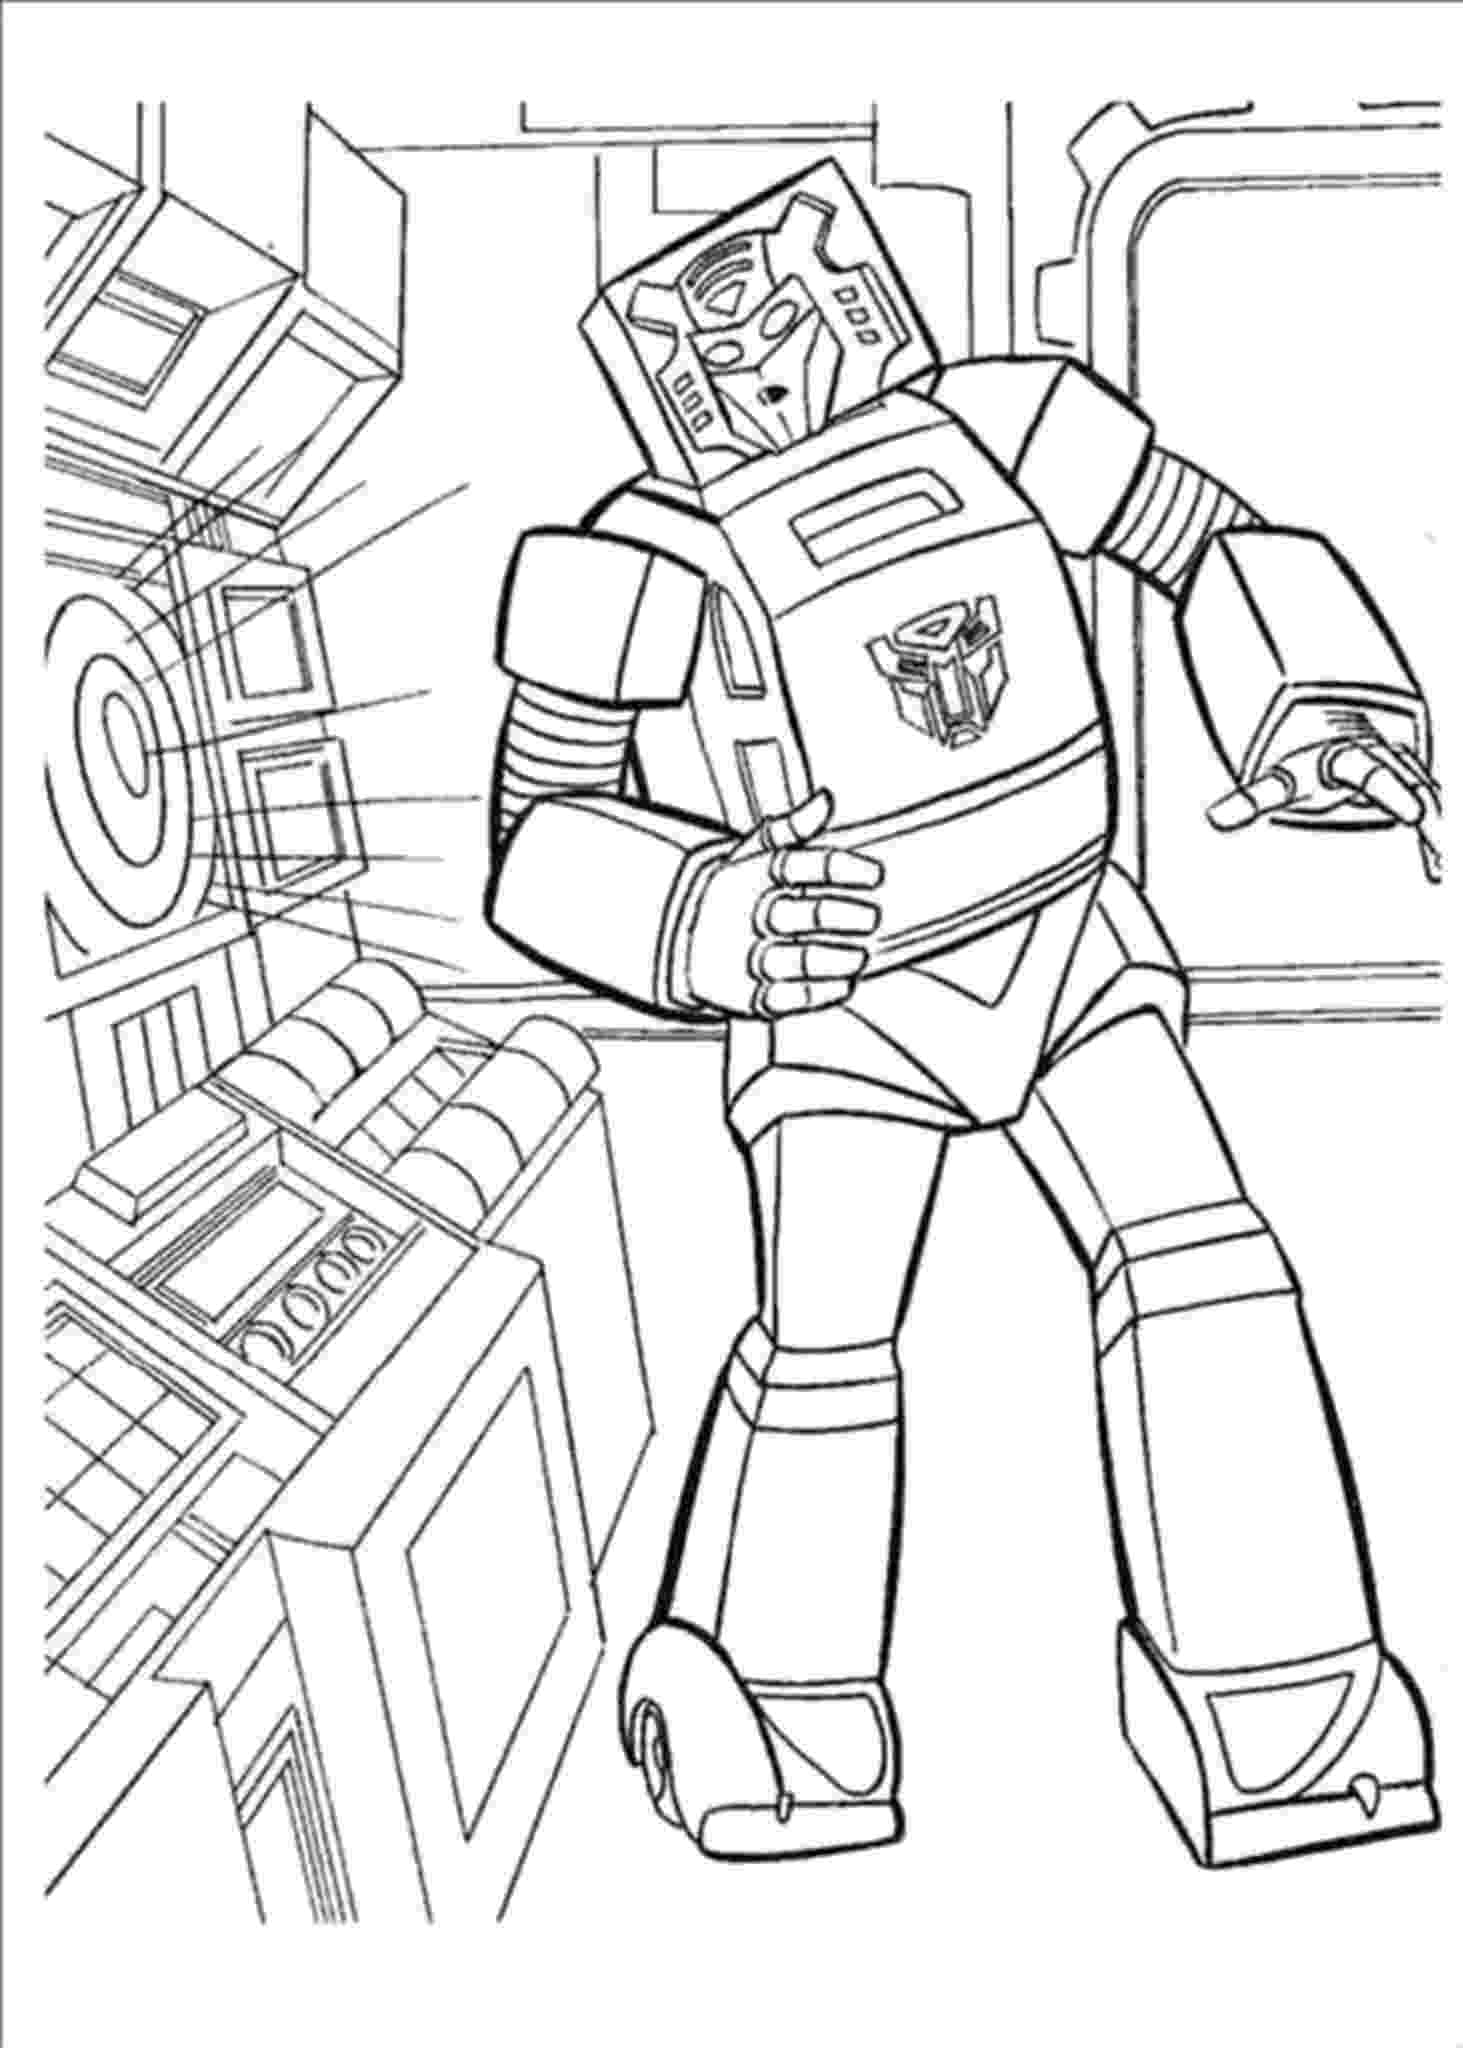 transformer coloring pages free transformer coloring pages to download and print for free pages transformer coloring free